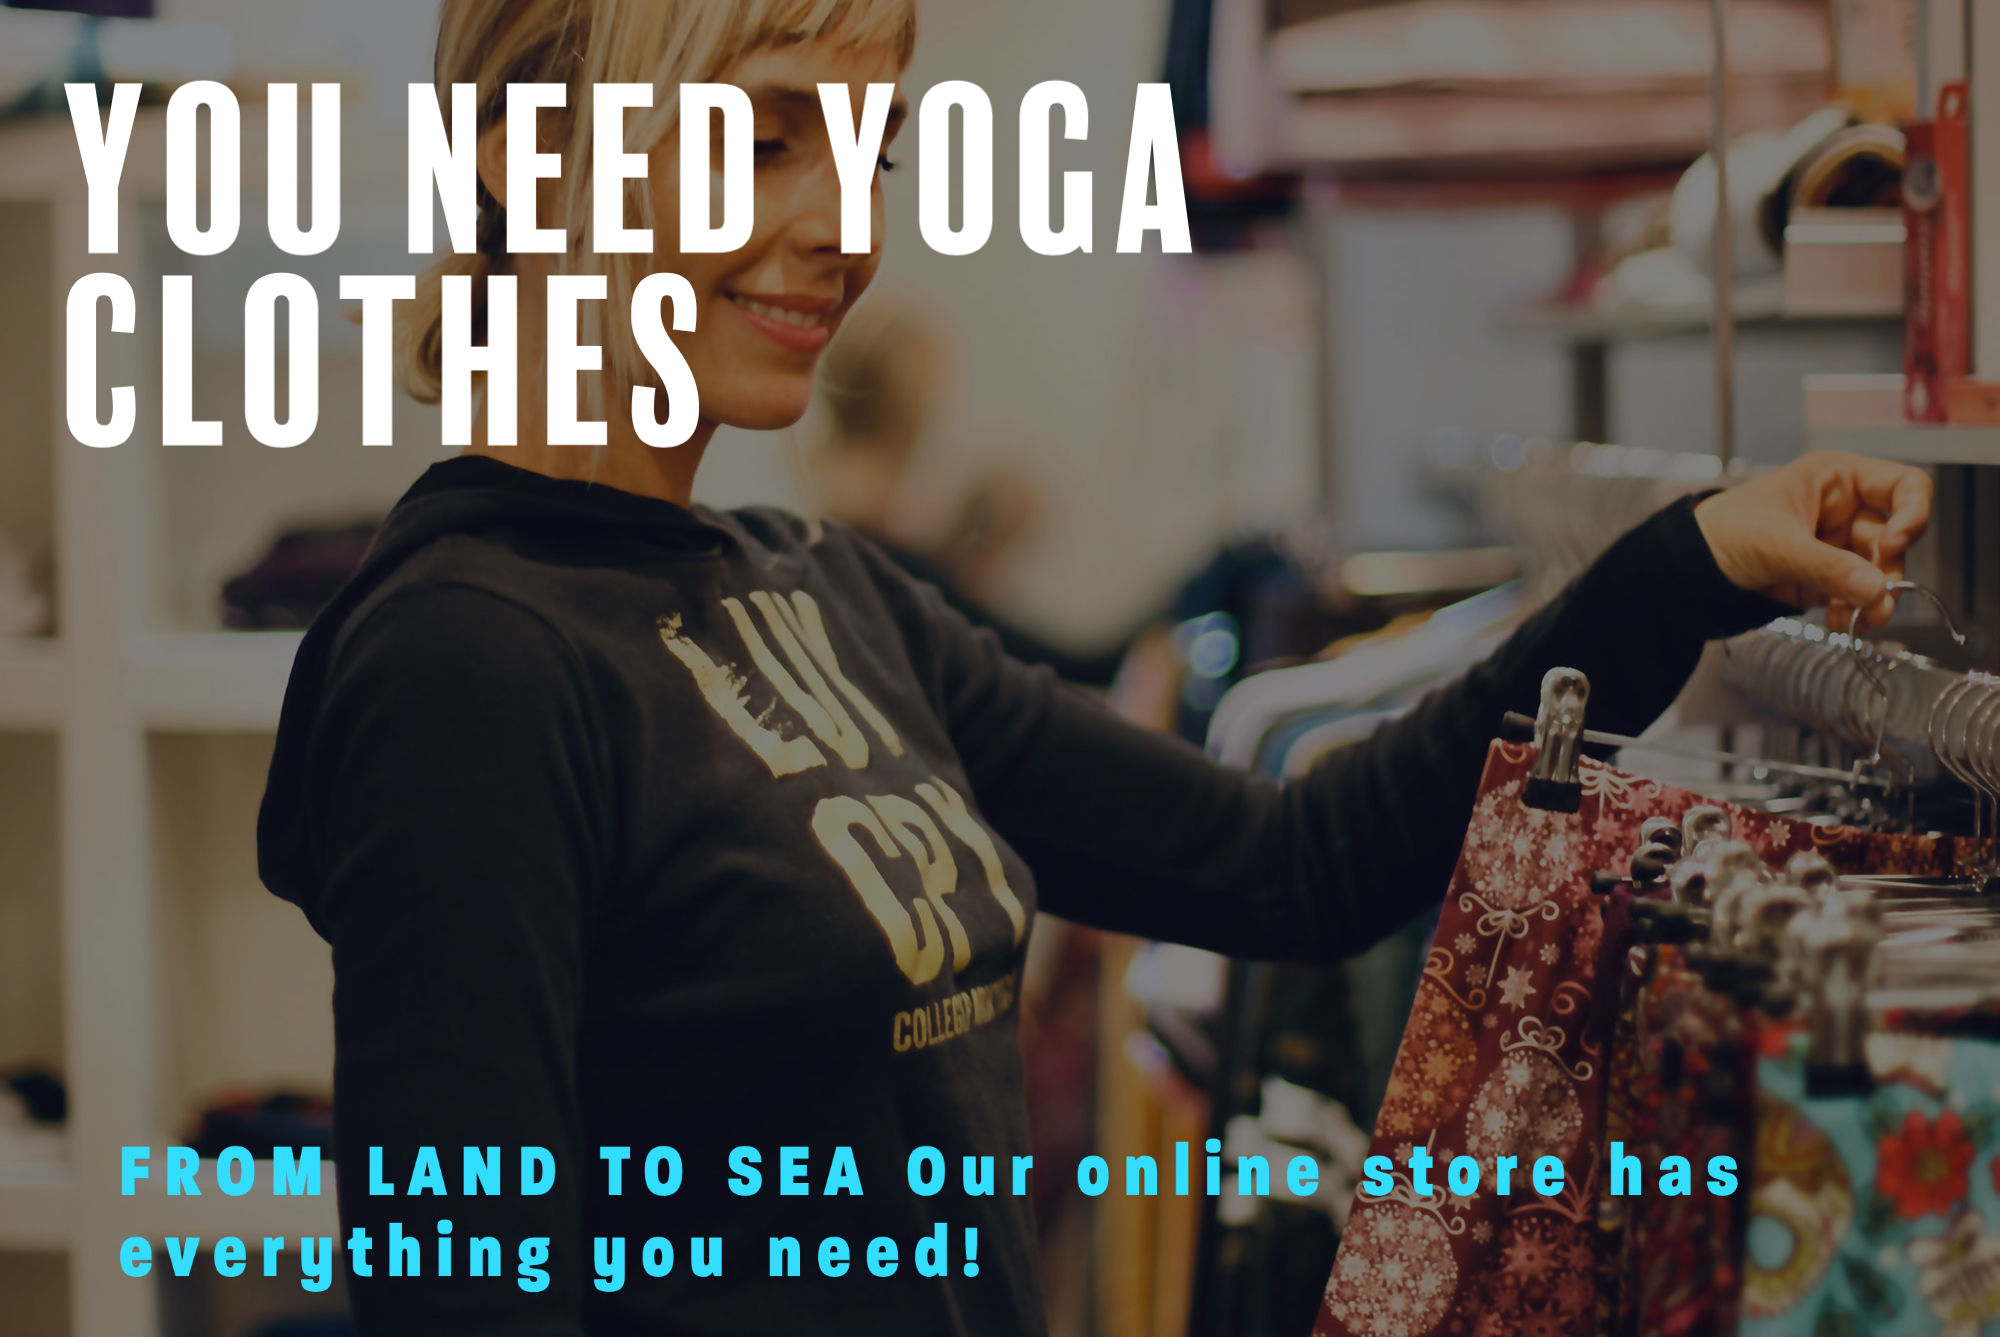 Shop till you drop at our online yoga store! land-to-sea yoga gear!